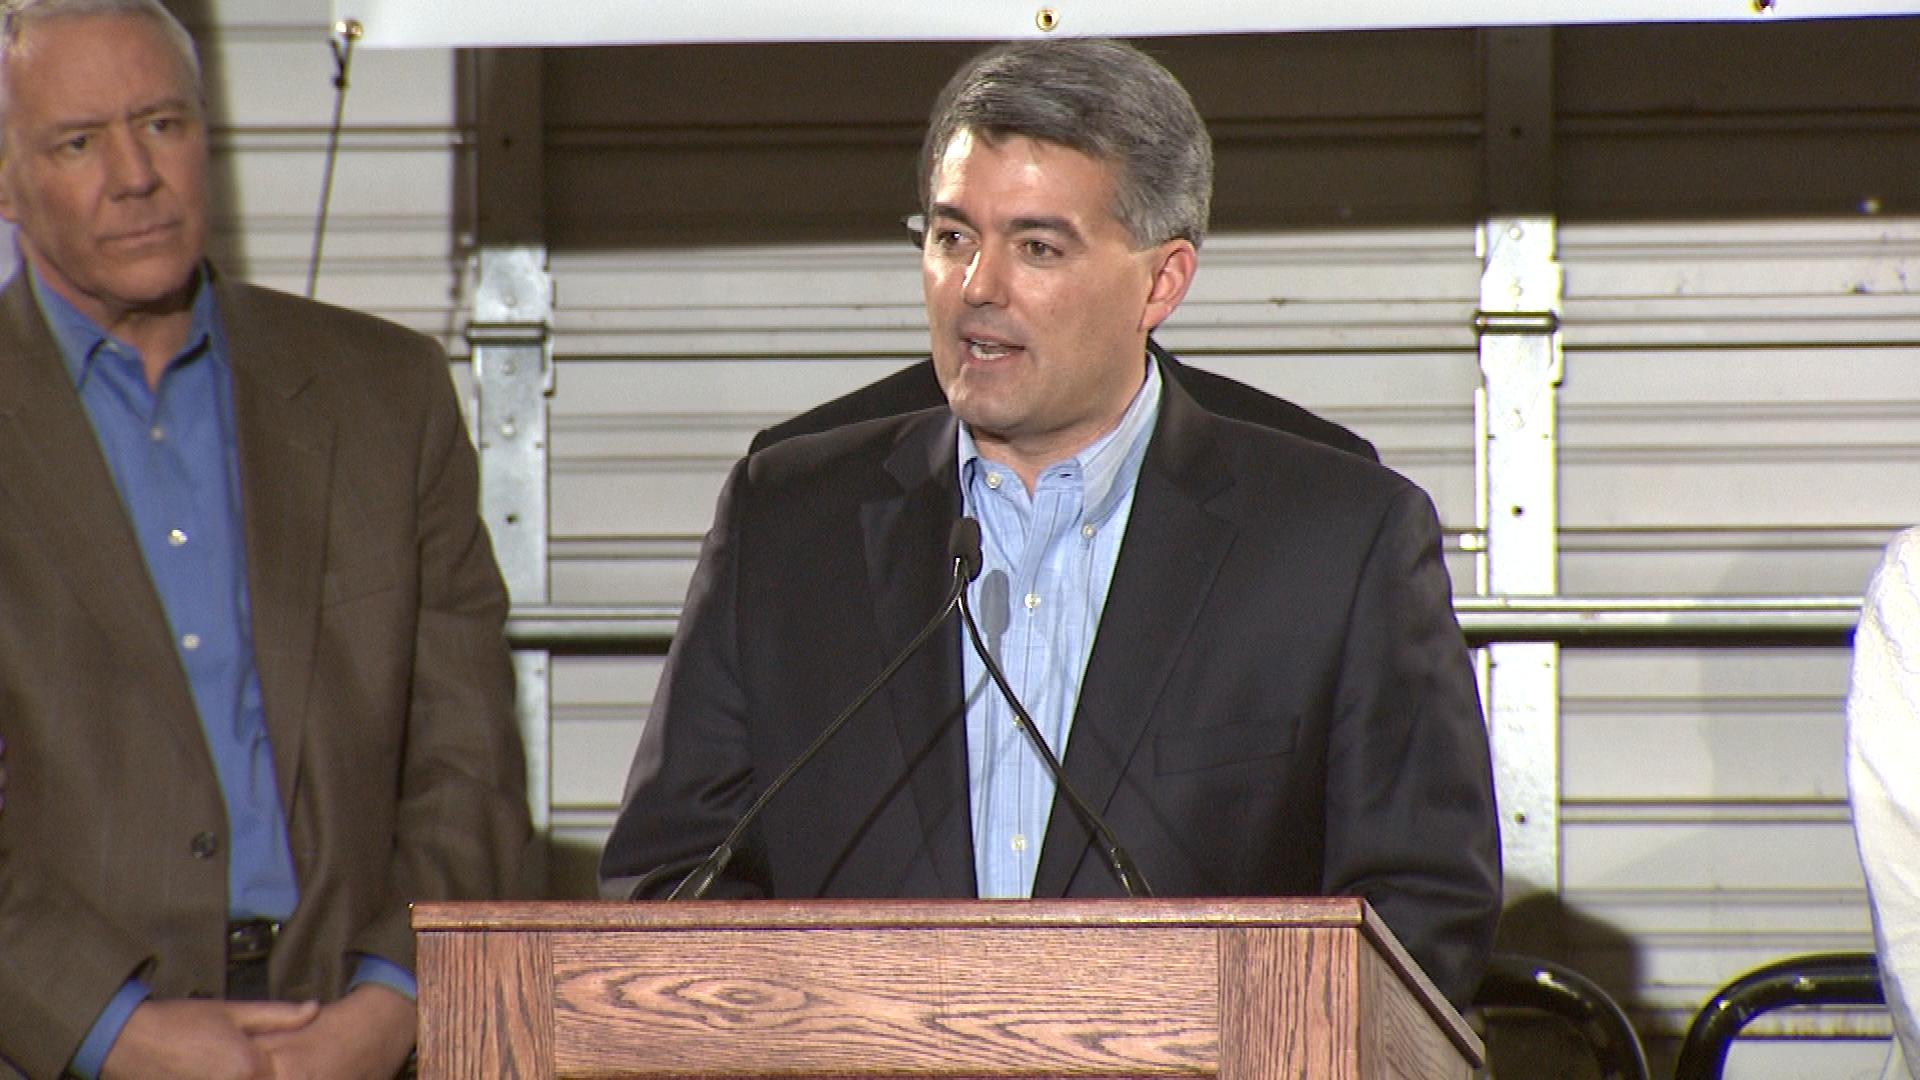 Rep. Cory Gardner announces his Senate run on March 1, 2014. (credit: CBS)